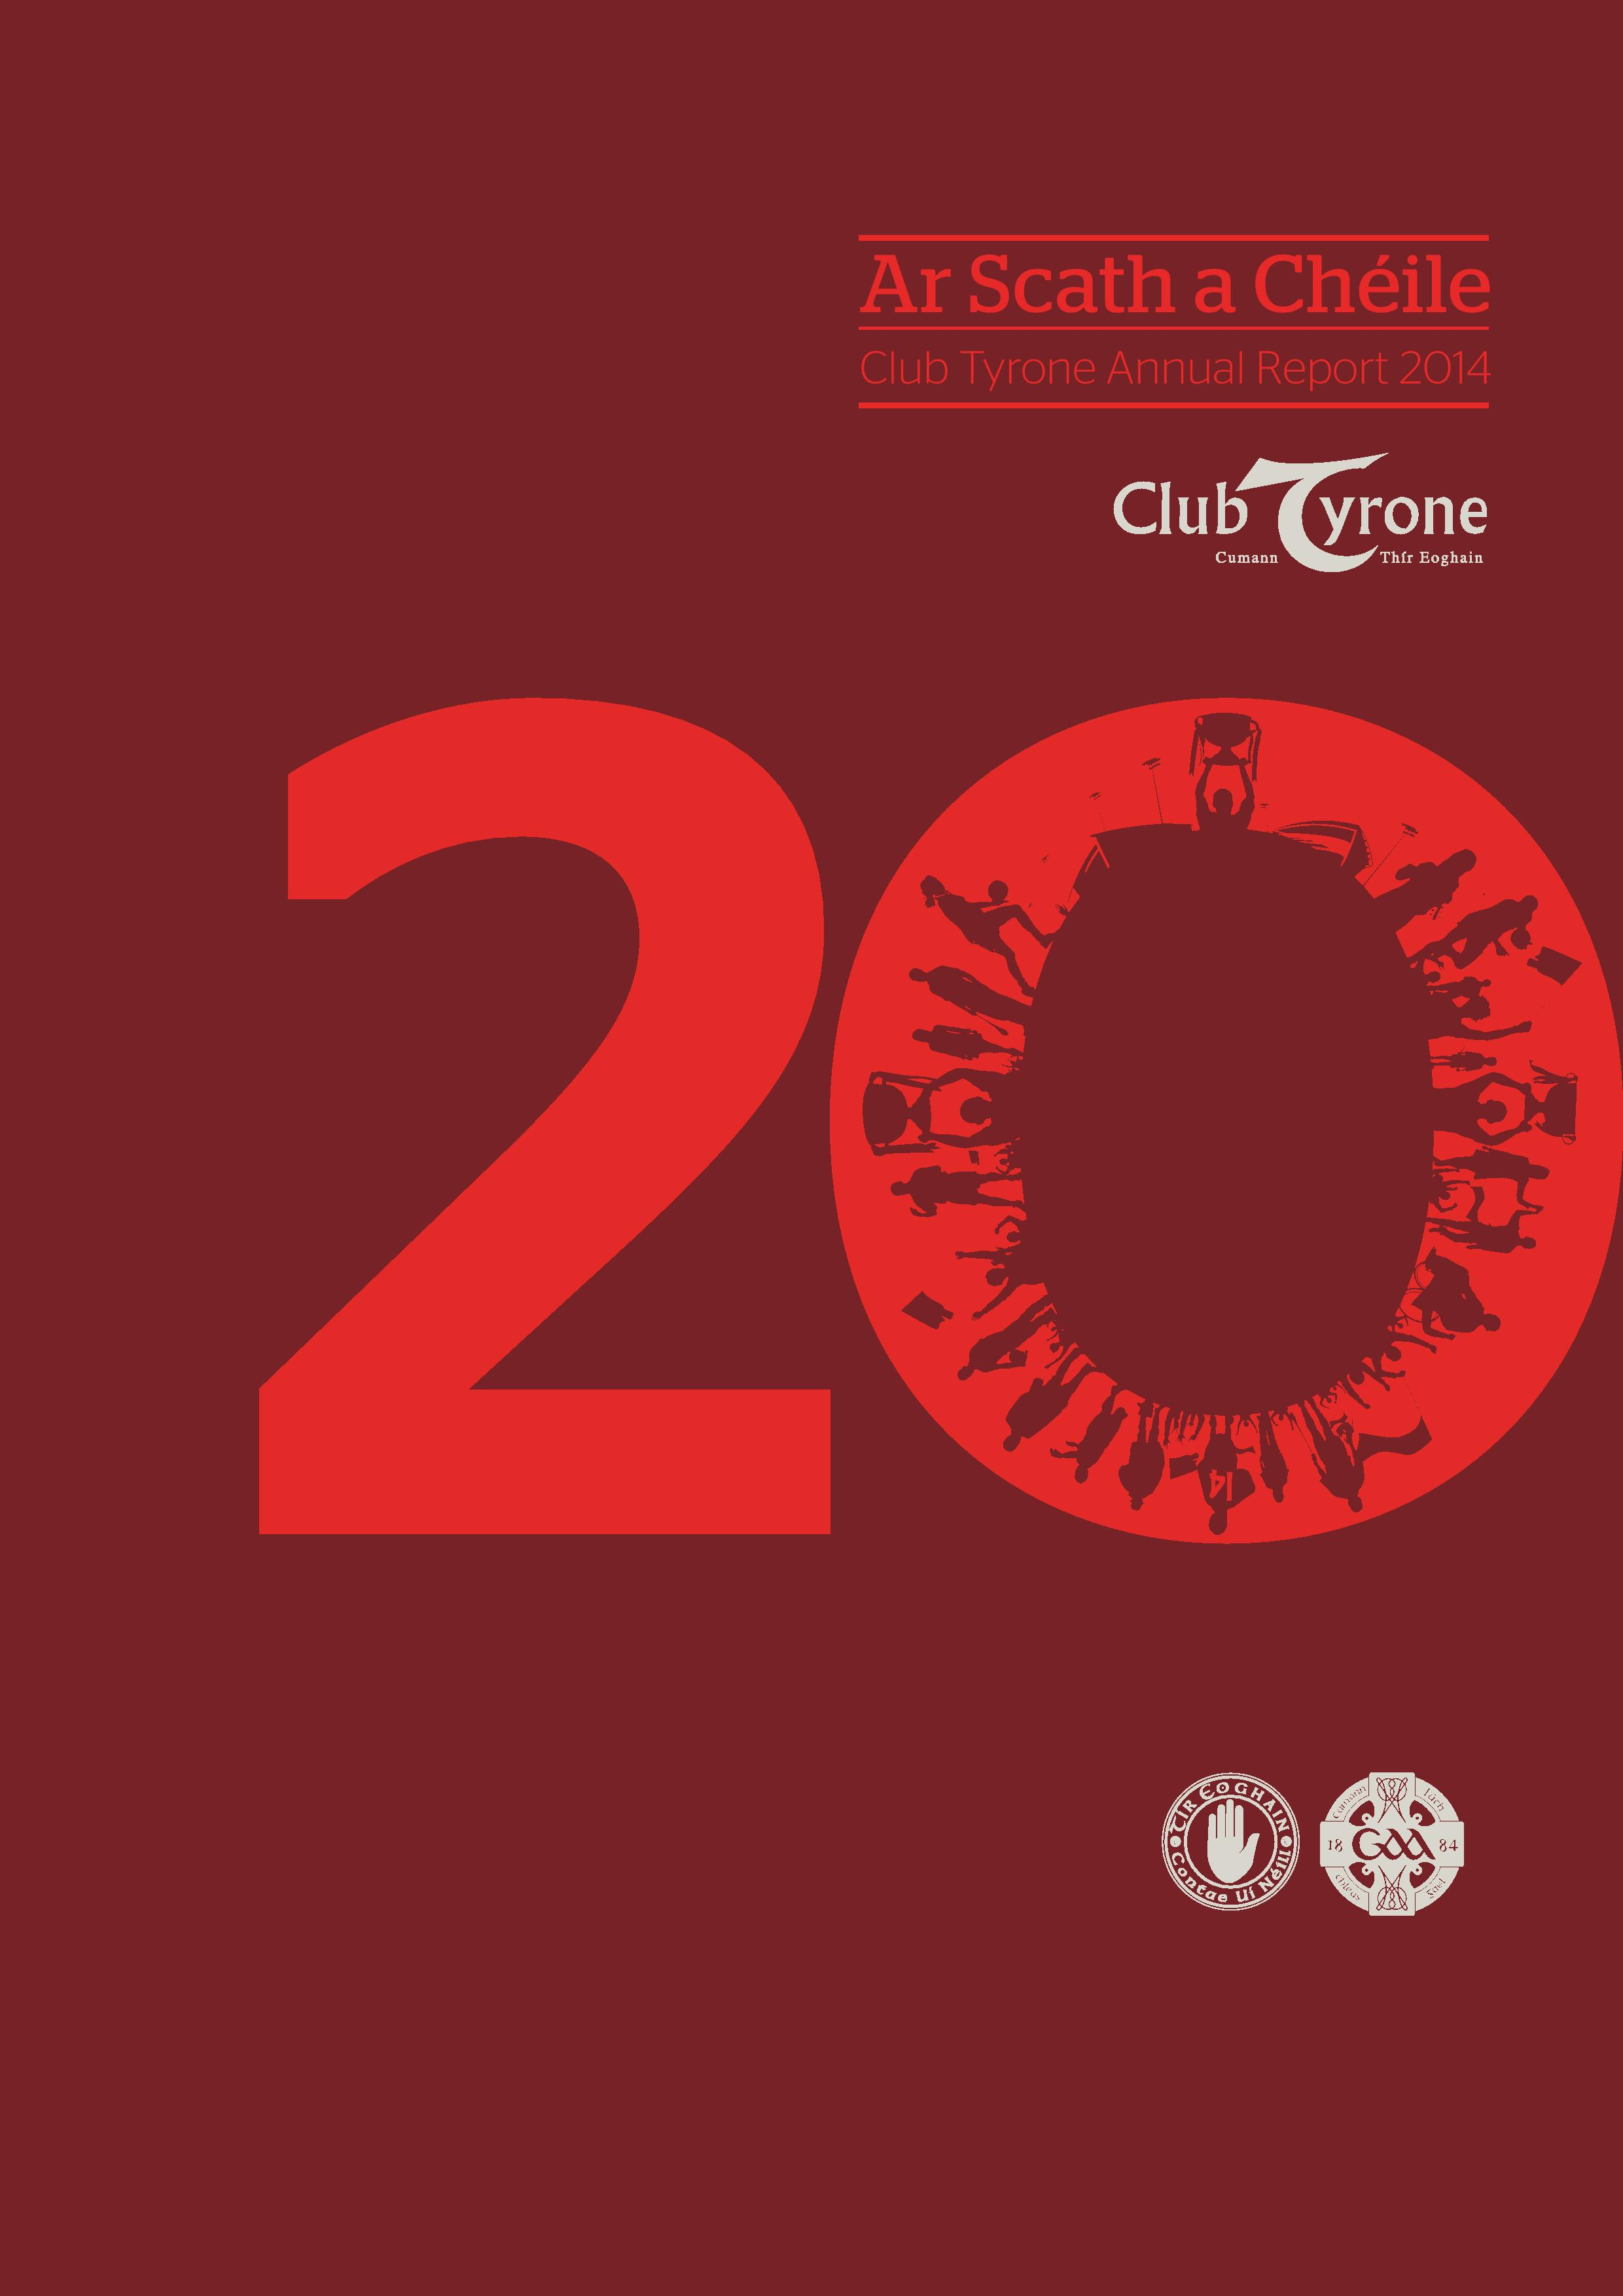 Club Tyrone Annual Report Now Available